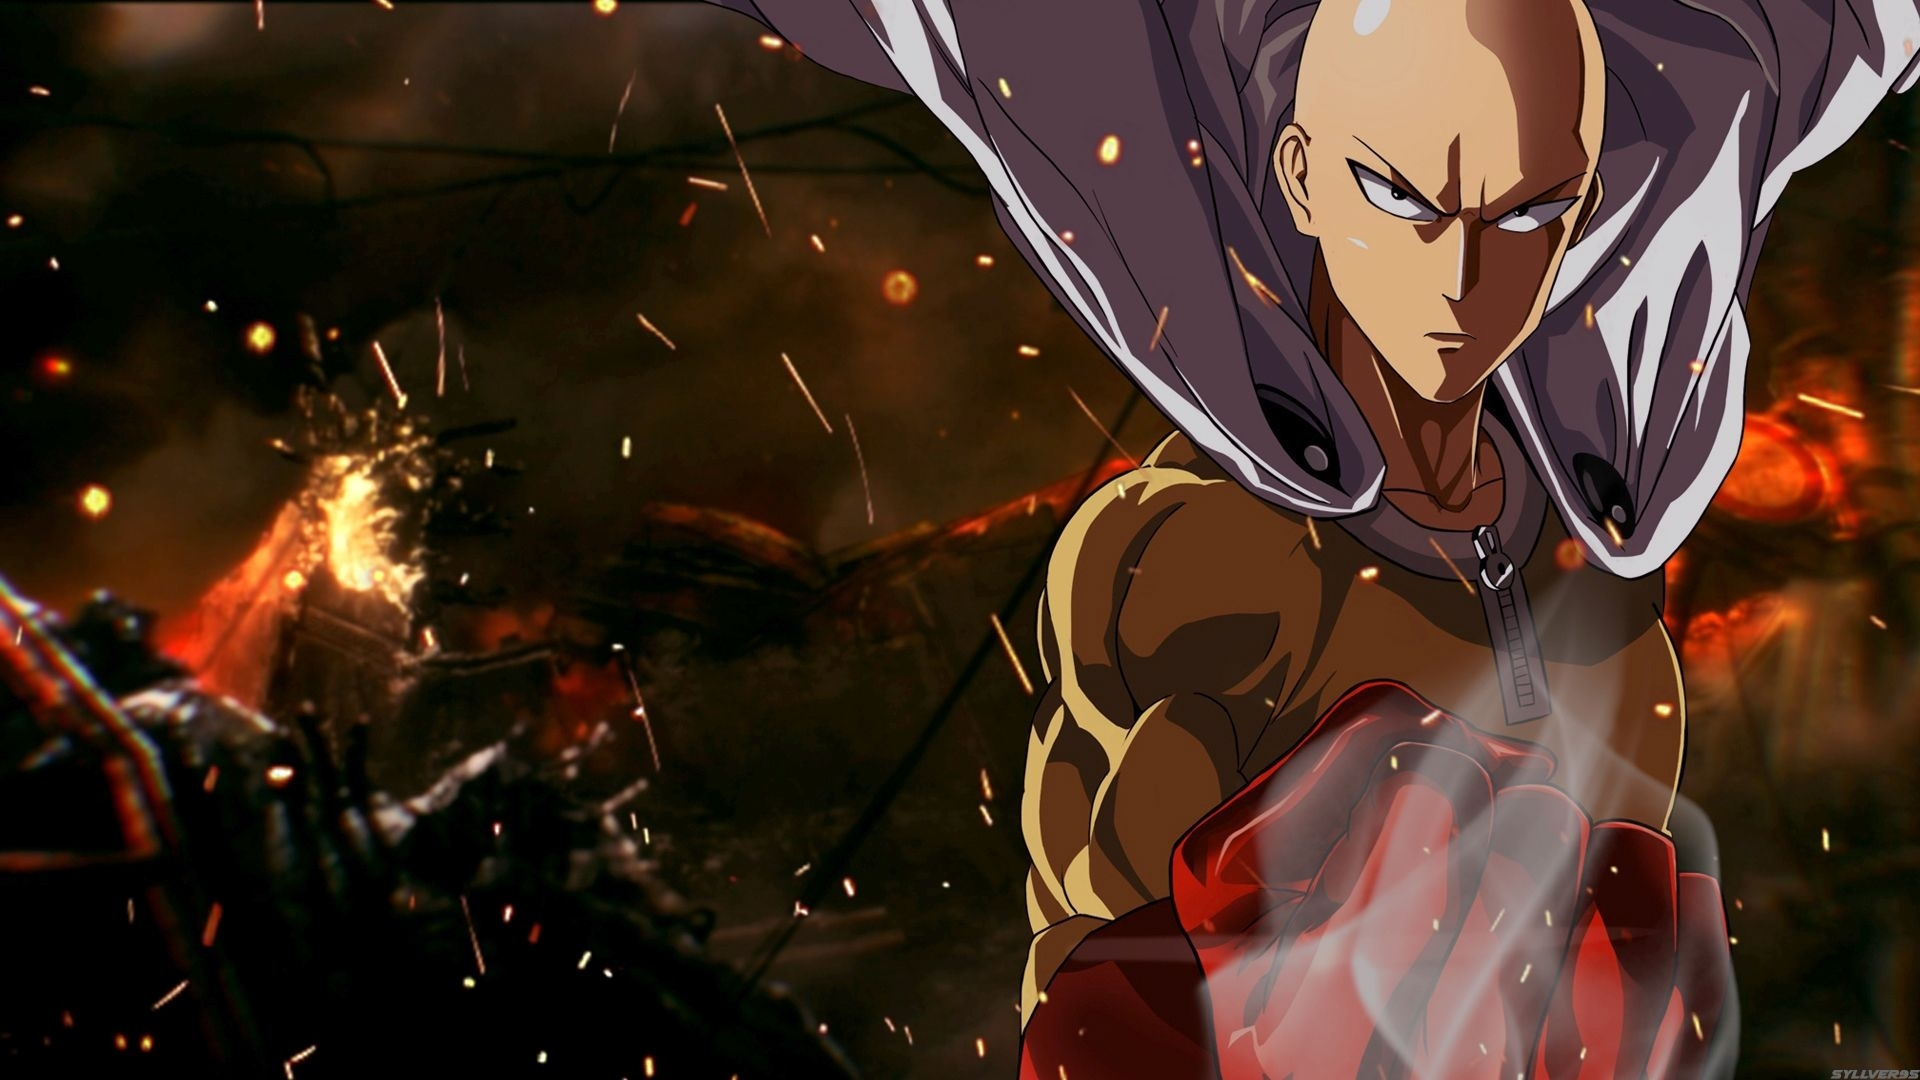 142 saitama (one-punch man) hd wallpapers | backgrounds  | Сomic